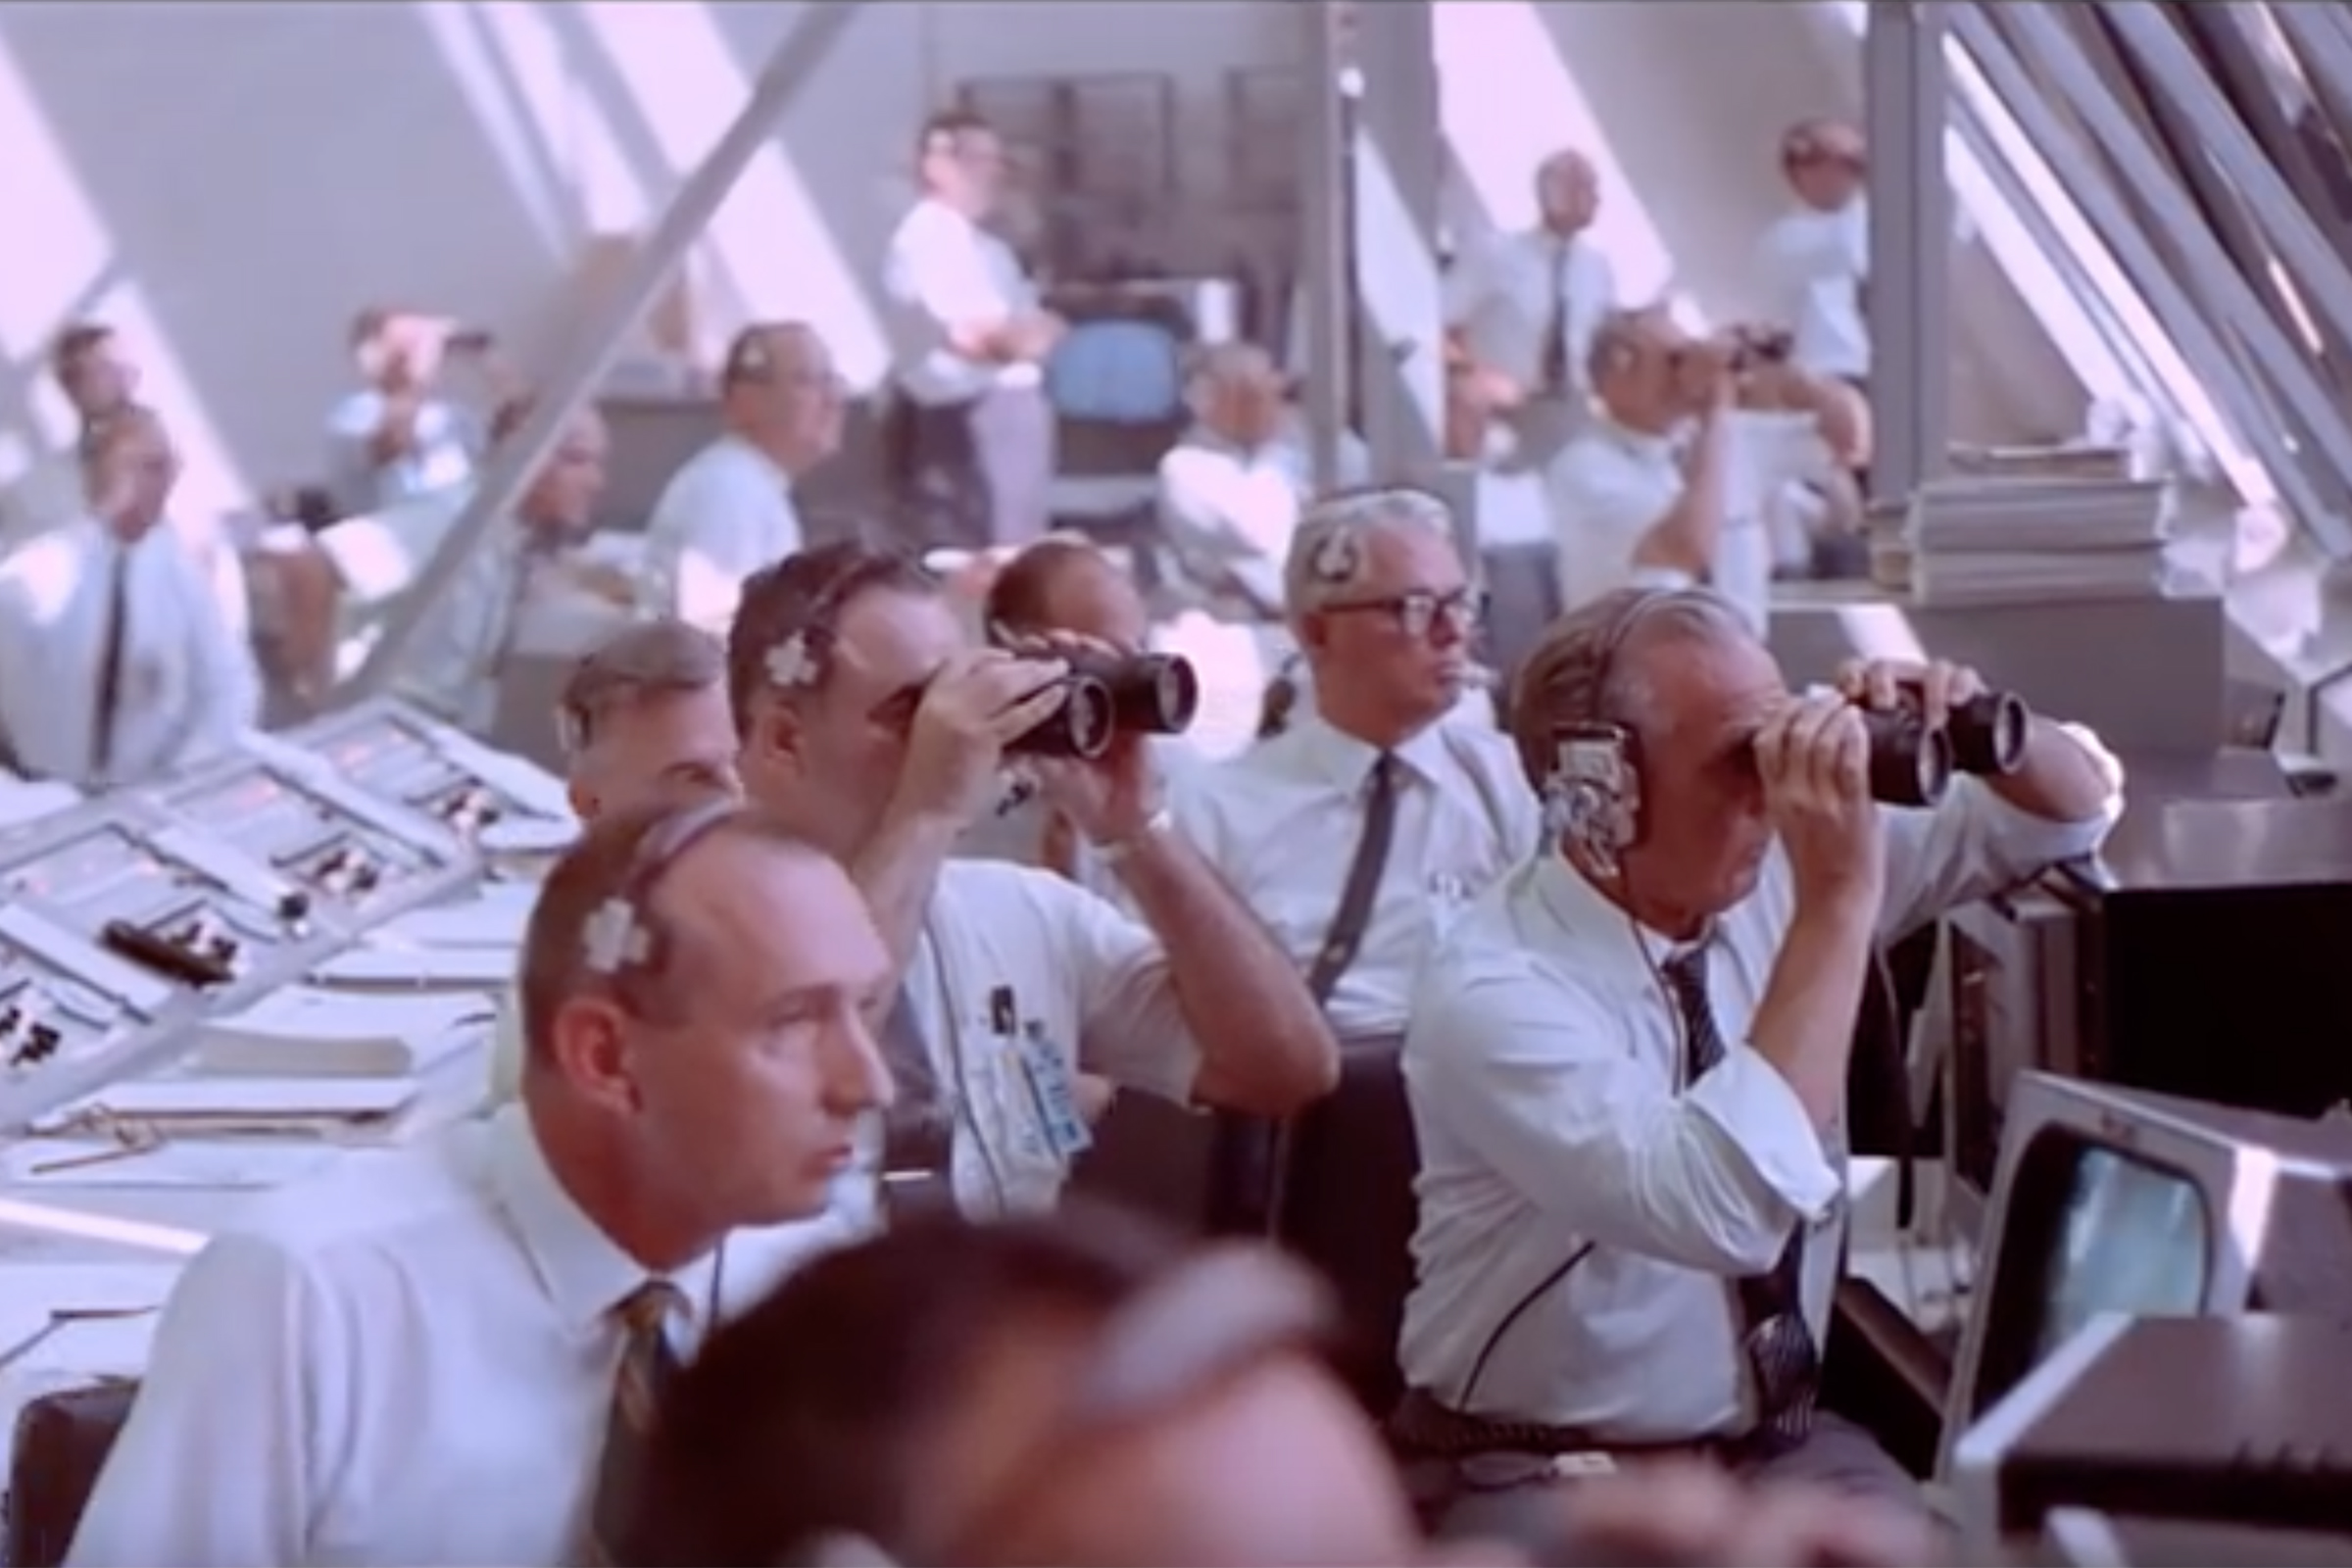 At Kennedy Space Center (Florida), the team at the Launch Control Center watch Apollo 11 as it lifts off in to Earth orbit.